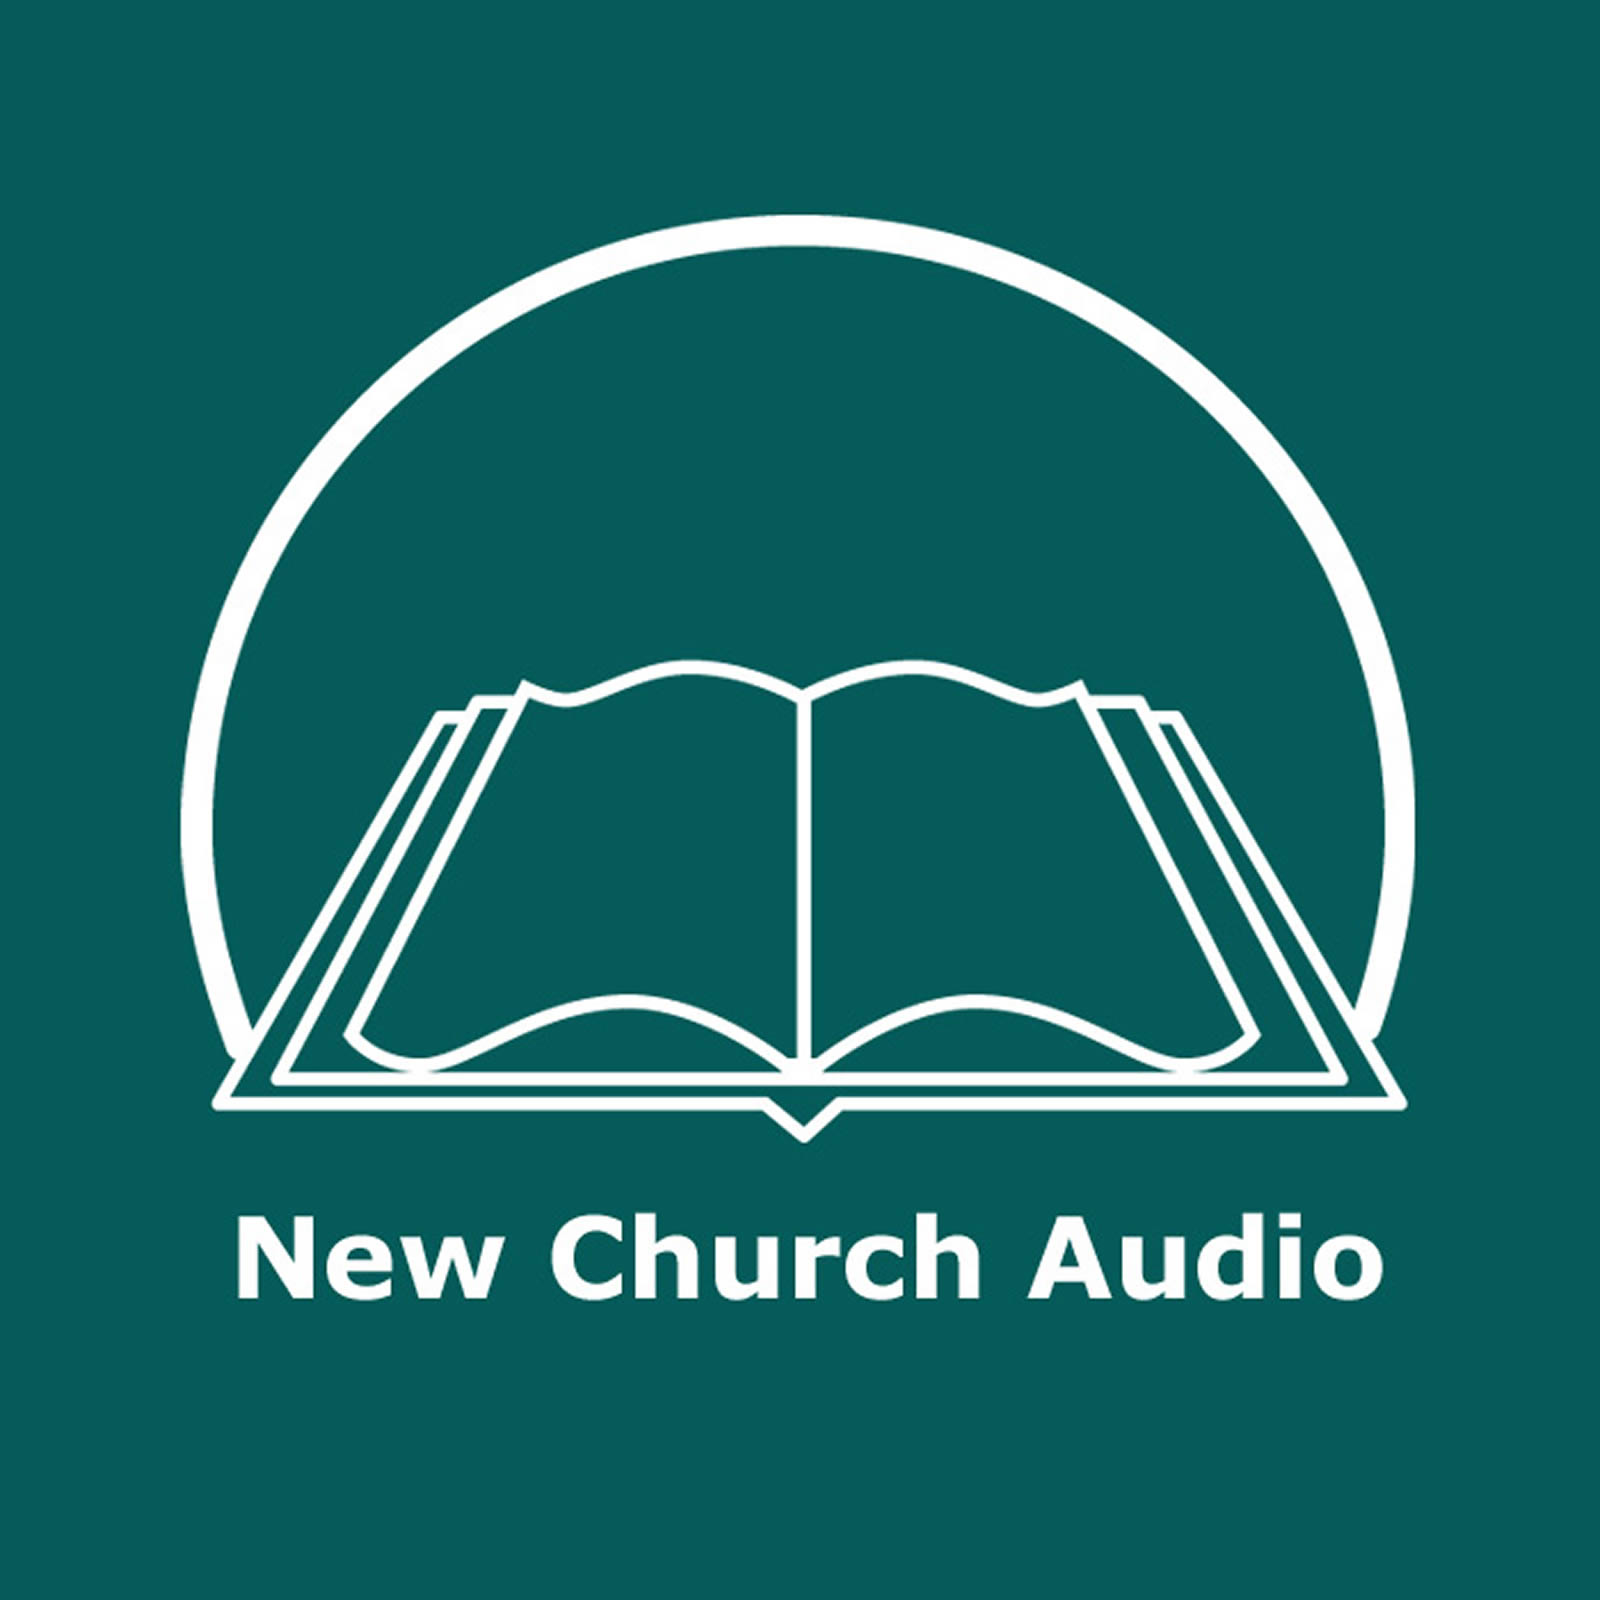 New Church Audio - Recent Events for Westville, RSA